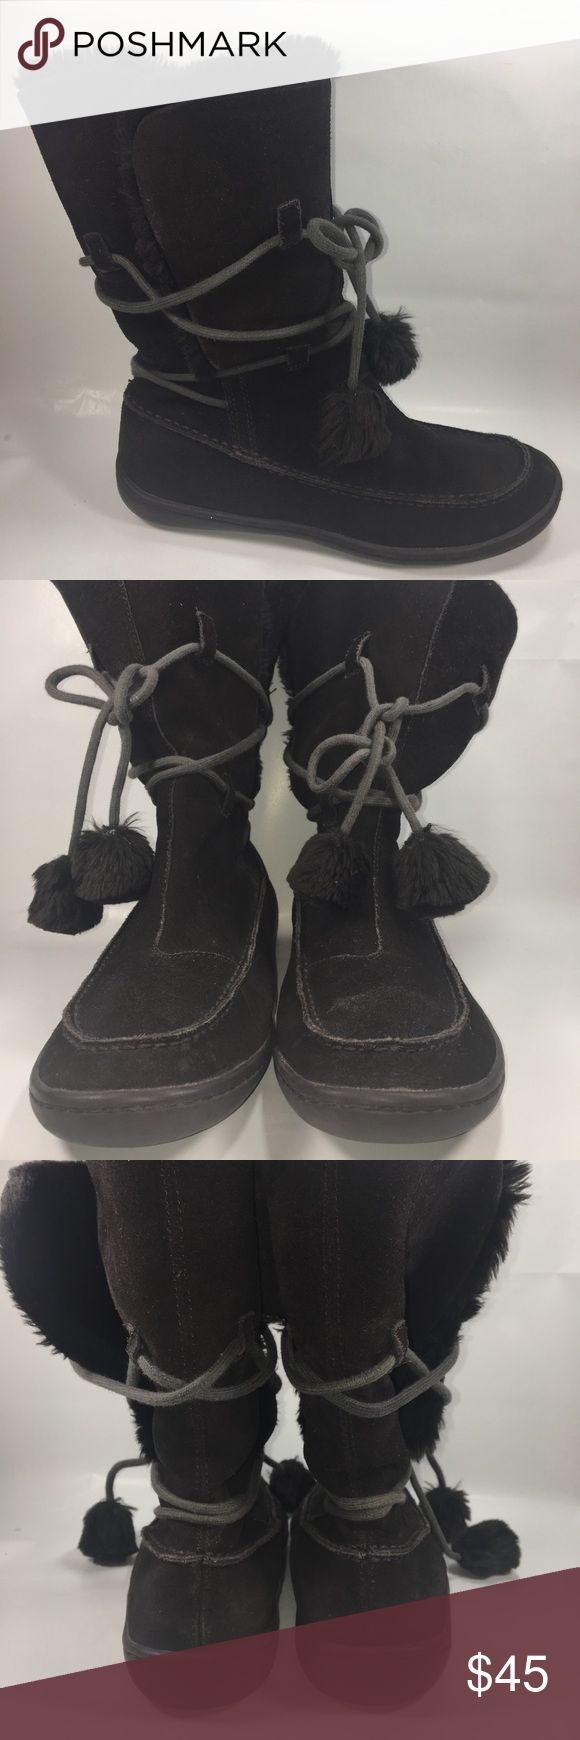 Steve Madden Brown Suede Iglou Winter Boots Size 9 Excellent Condition Some Normal Wear See Pictures. Steve Madden Brown Suede Iglou Faux Fur Winter Boots Size 9 Shoe # S155 Steve Madden Shoes Winter & Rain Boots